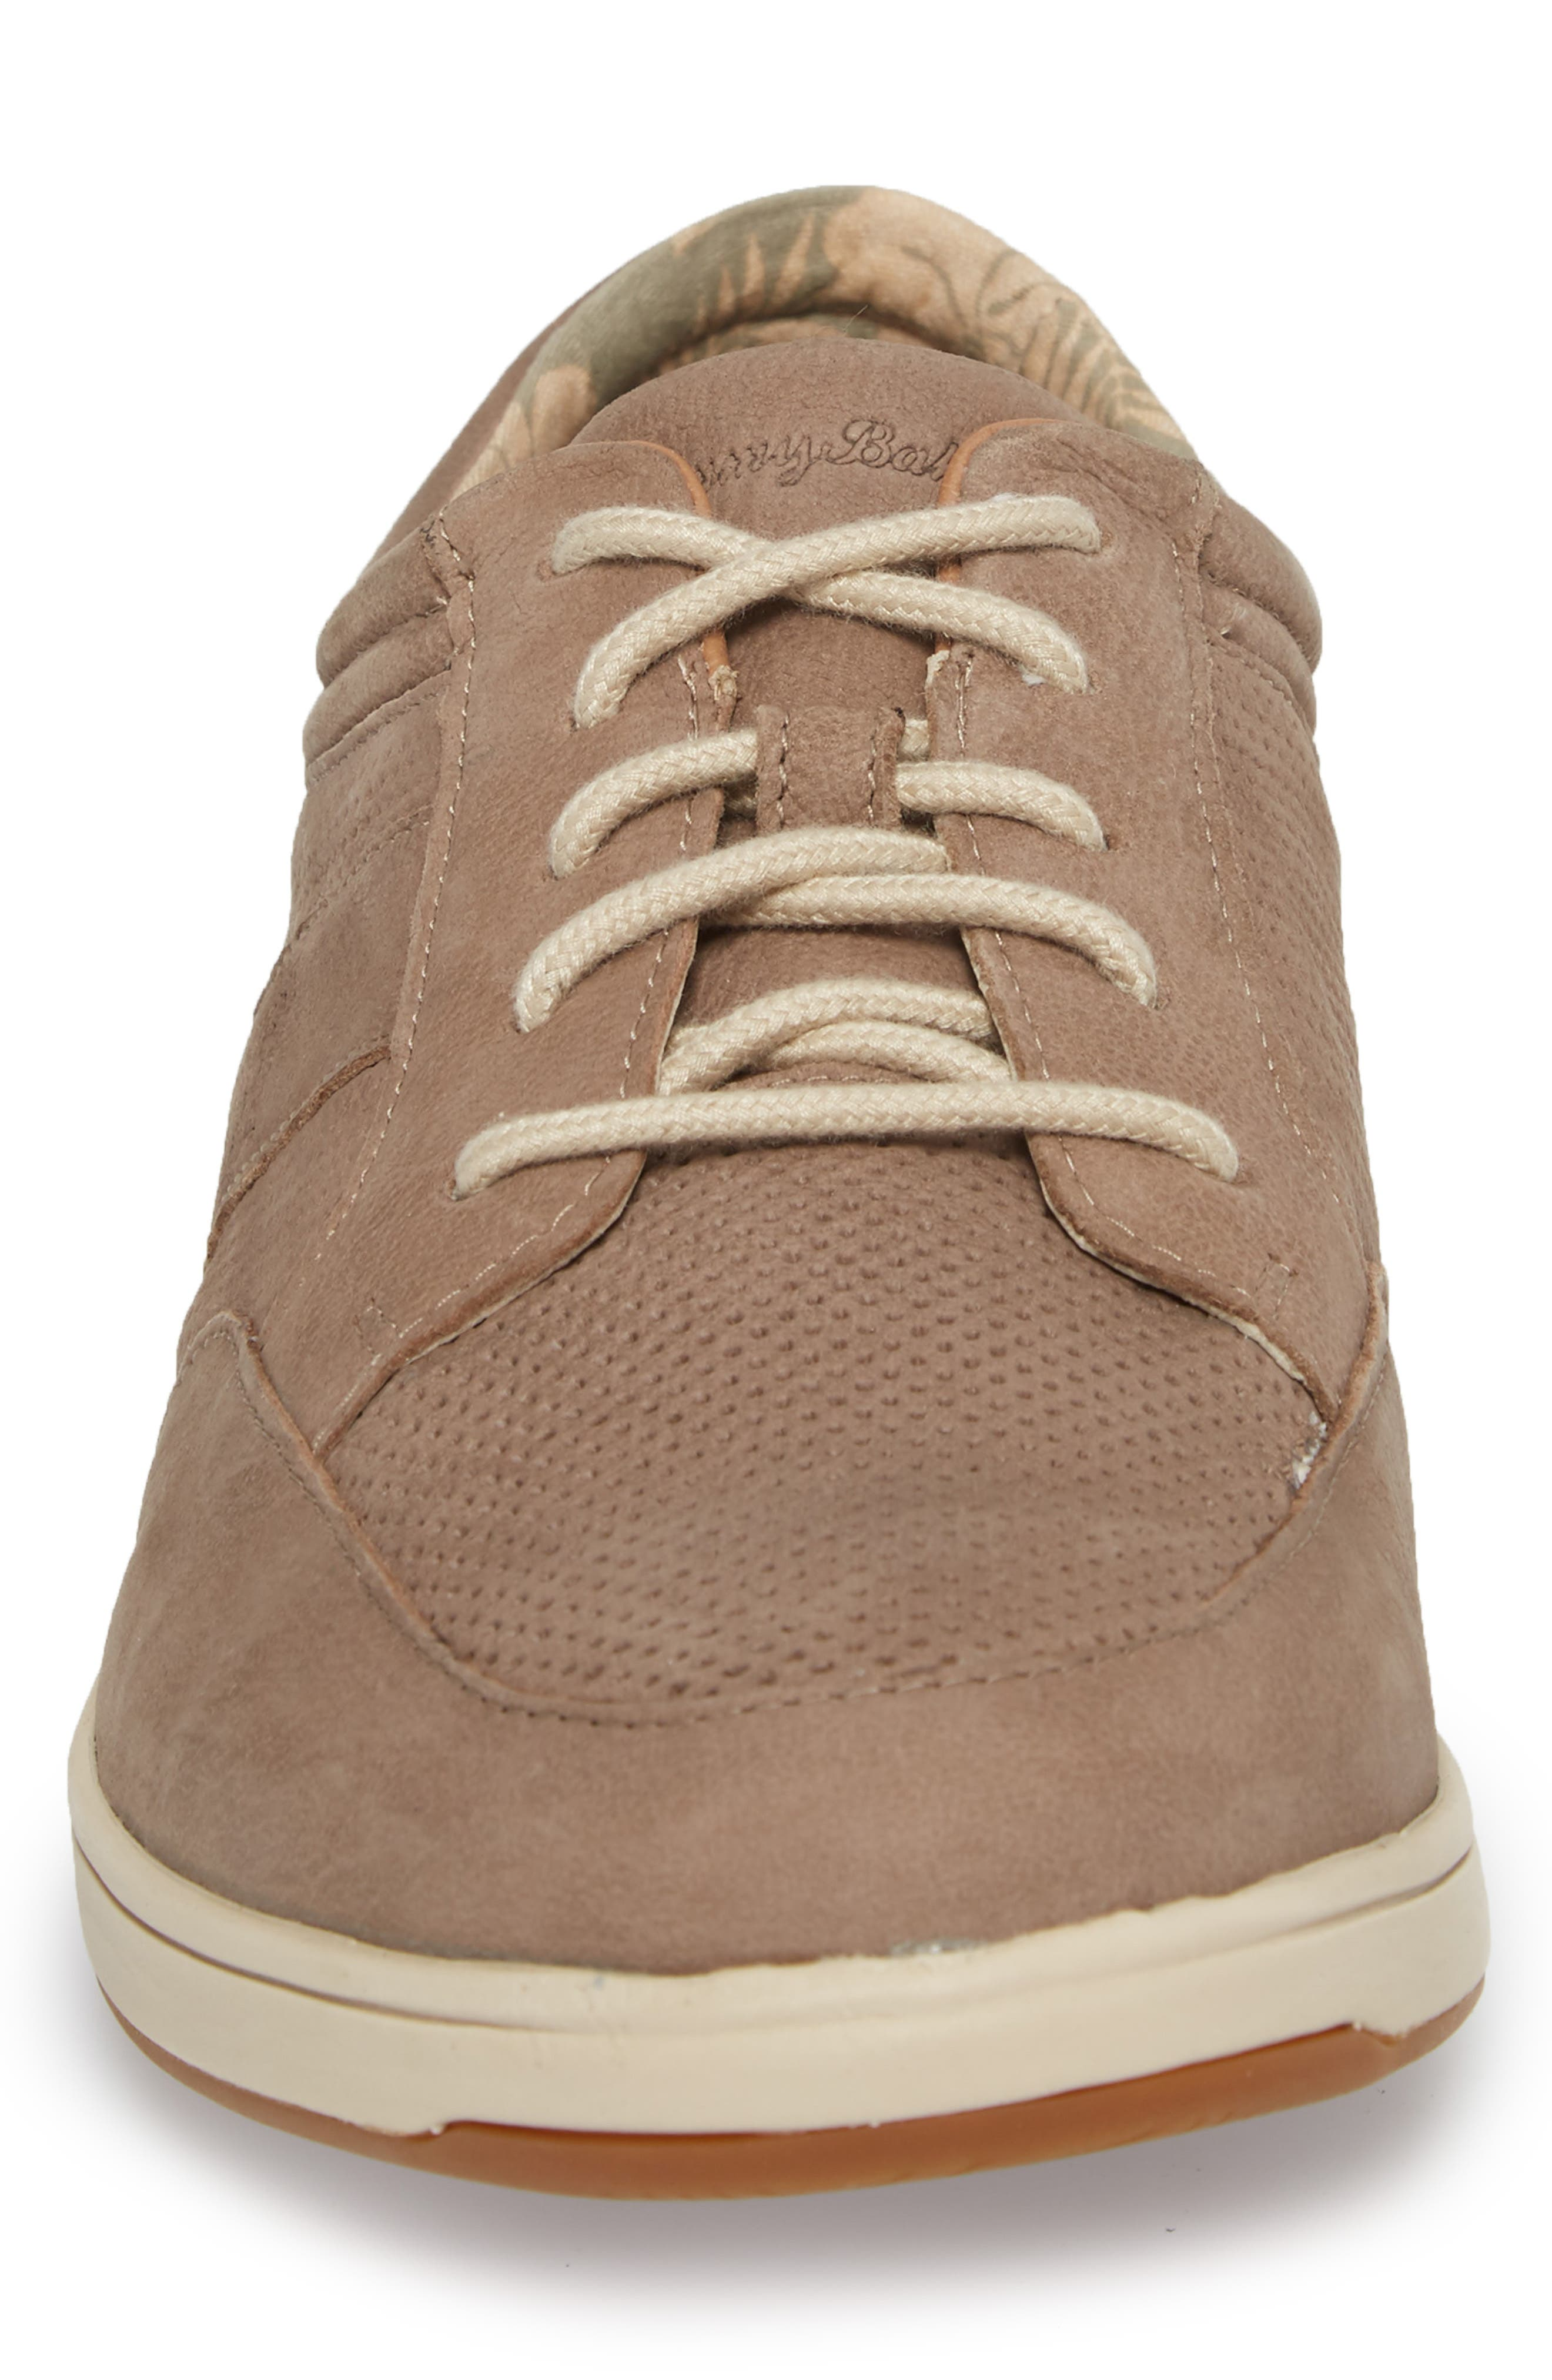 Caicos Authentic Low Top Sneaker,                             Alternate thumbnail 4, color,                             Taupe Leather